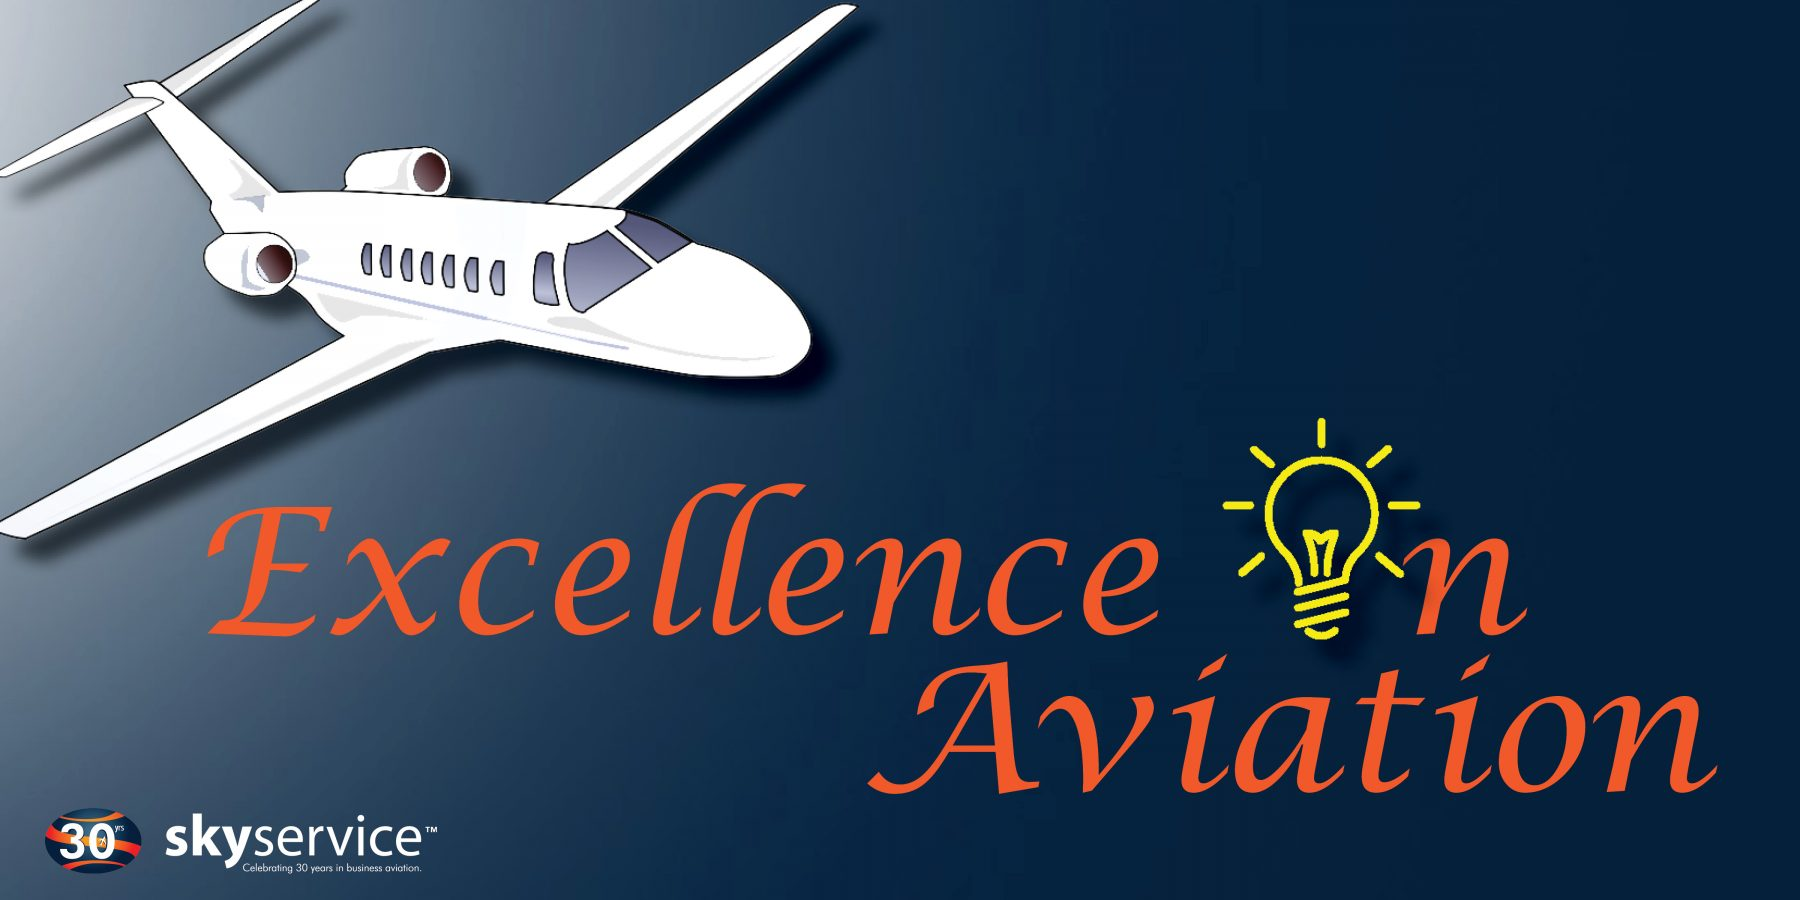 Skyservice™ Branches Out with New Original Content Series Excellence in Aviation